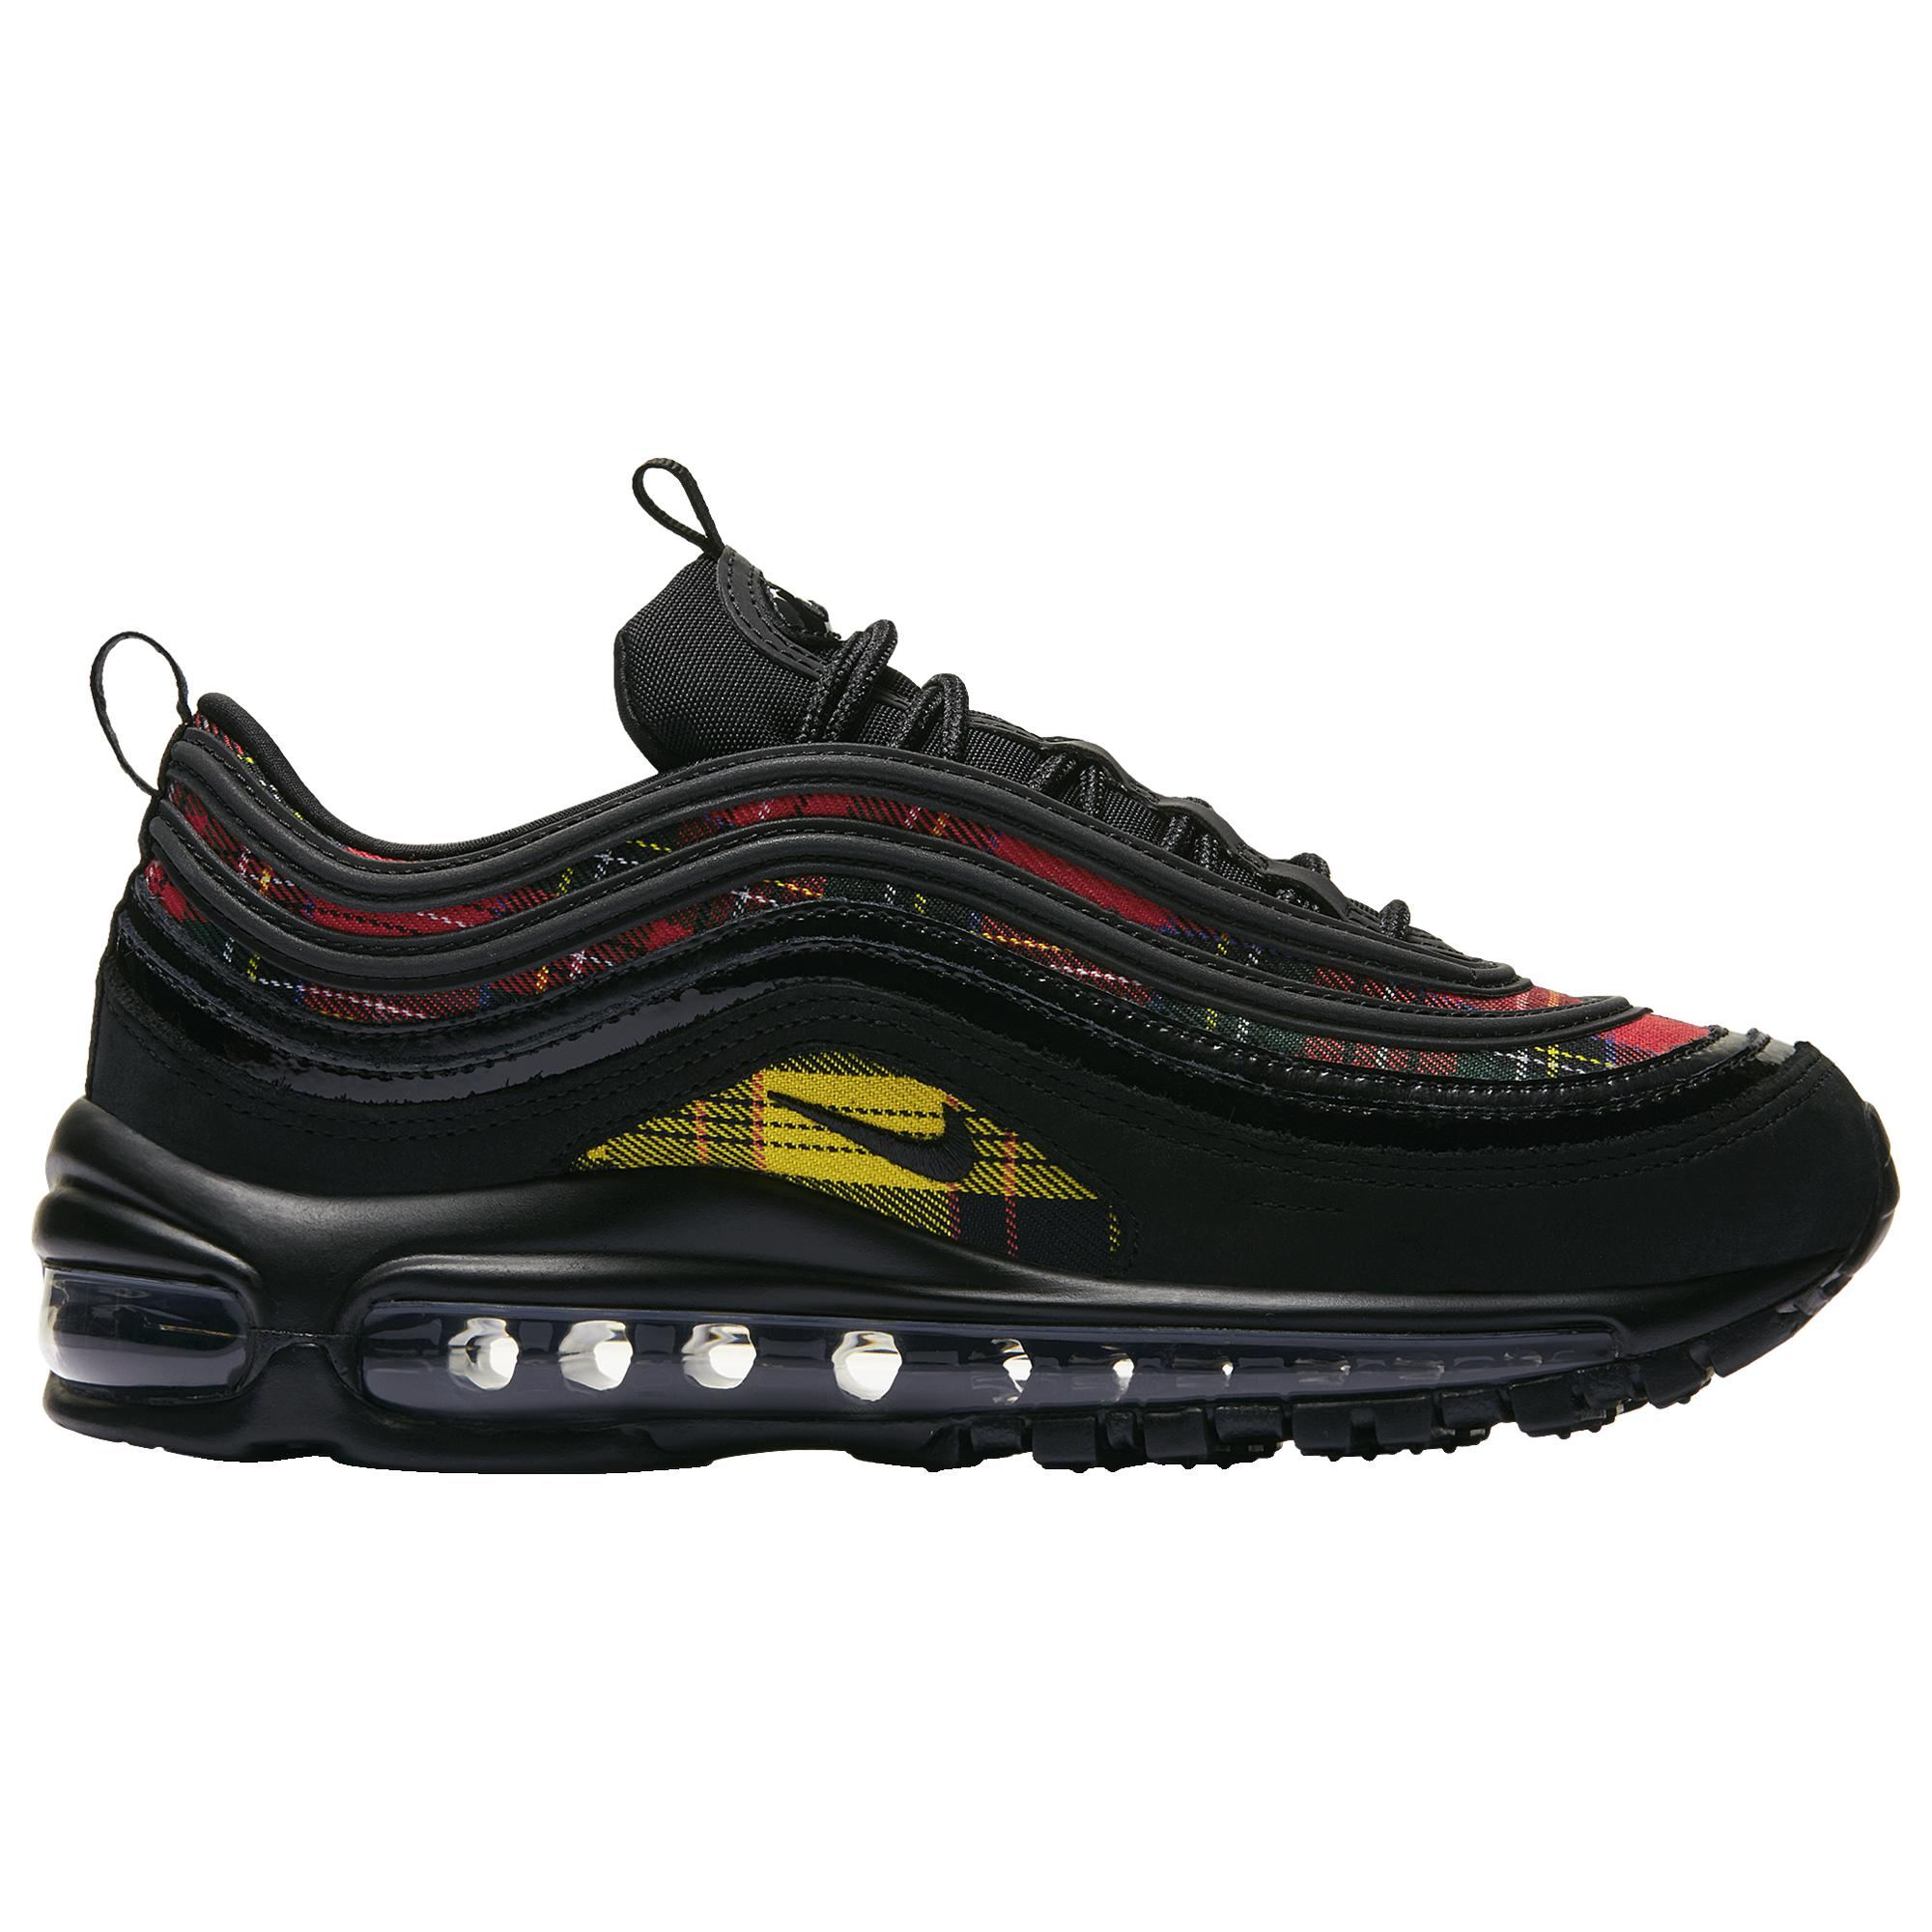 Lyst - Nike Air Max 97 Se Nrg in Black fc7ab65088